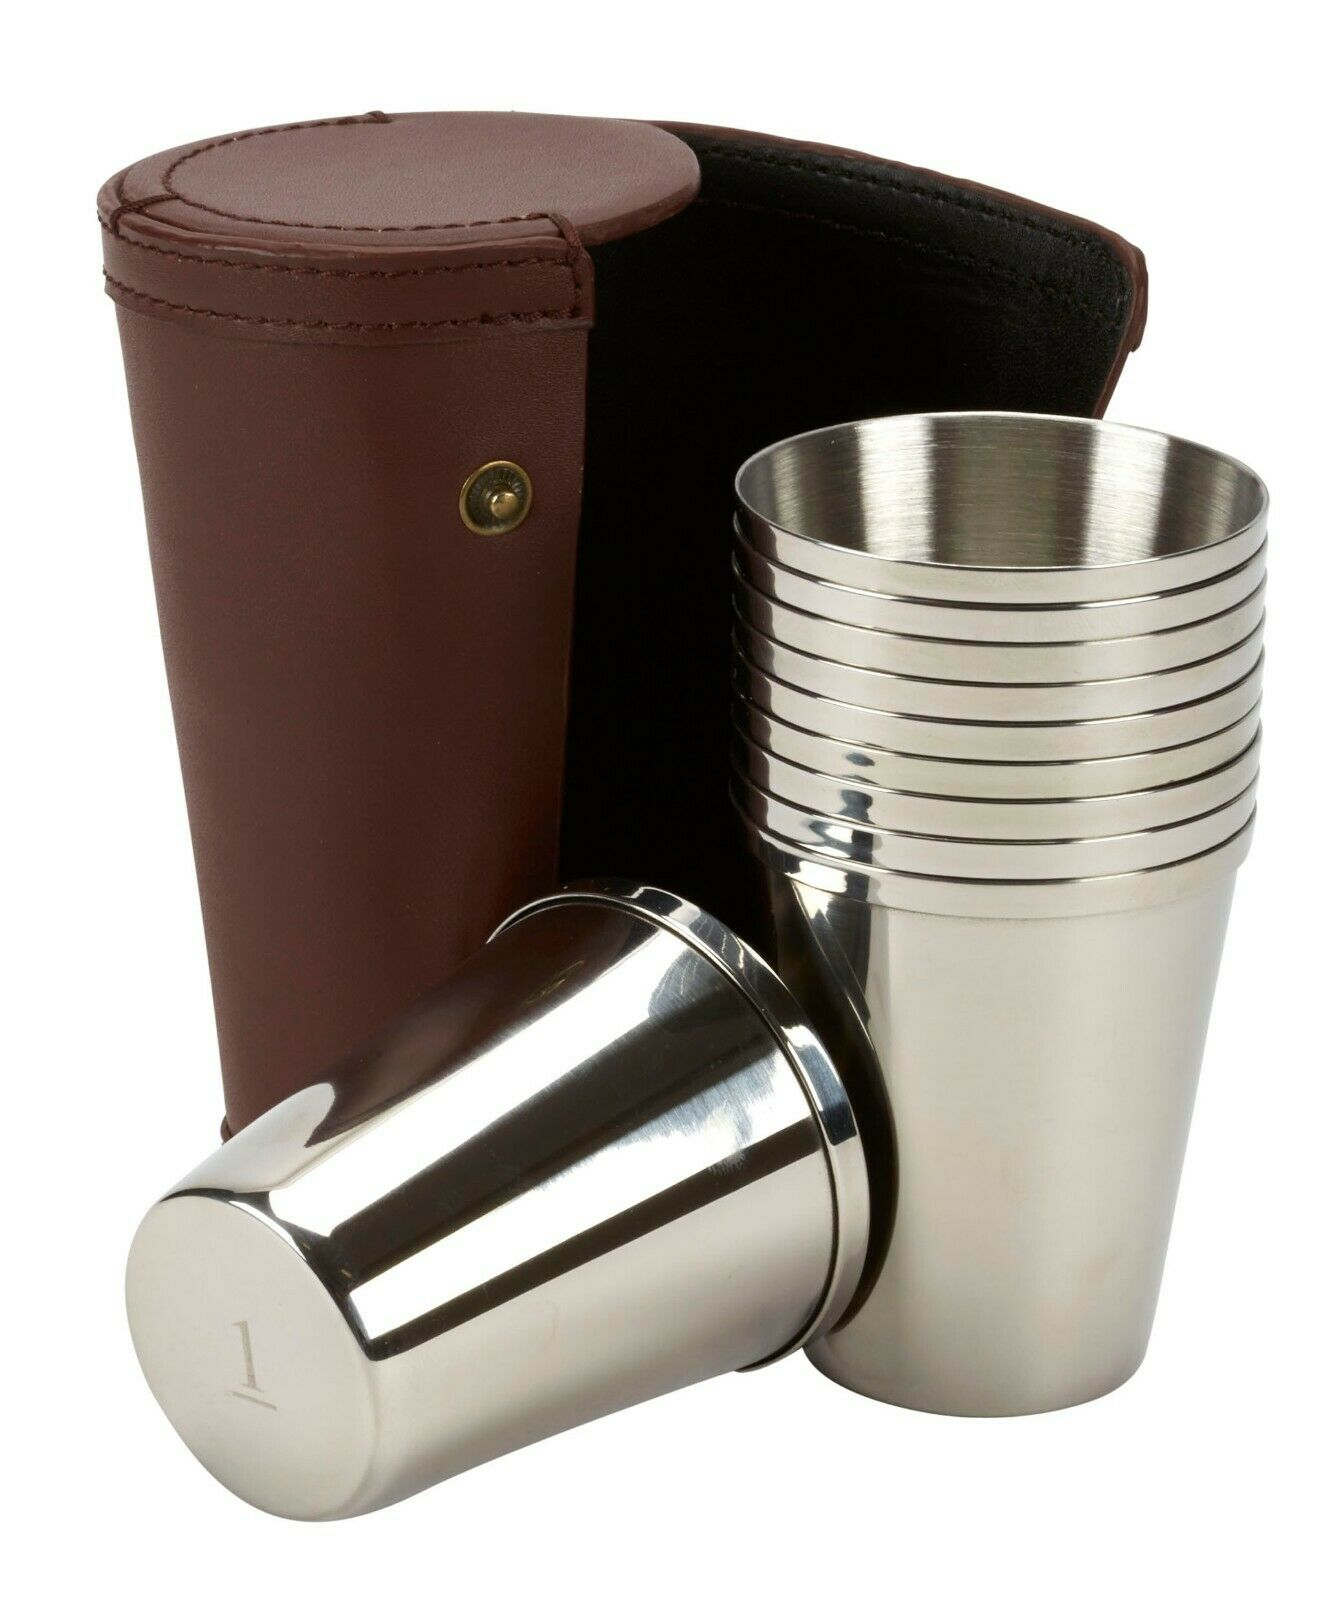 Peg Finder  ten 4oz stainless steel tumblers in a leather case, game shooting